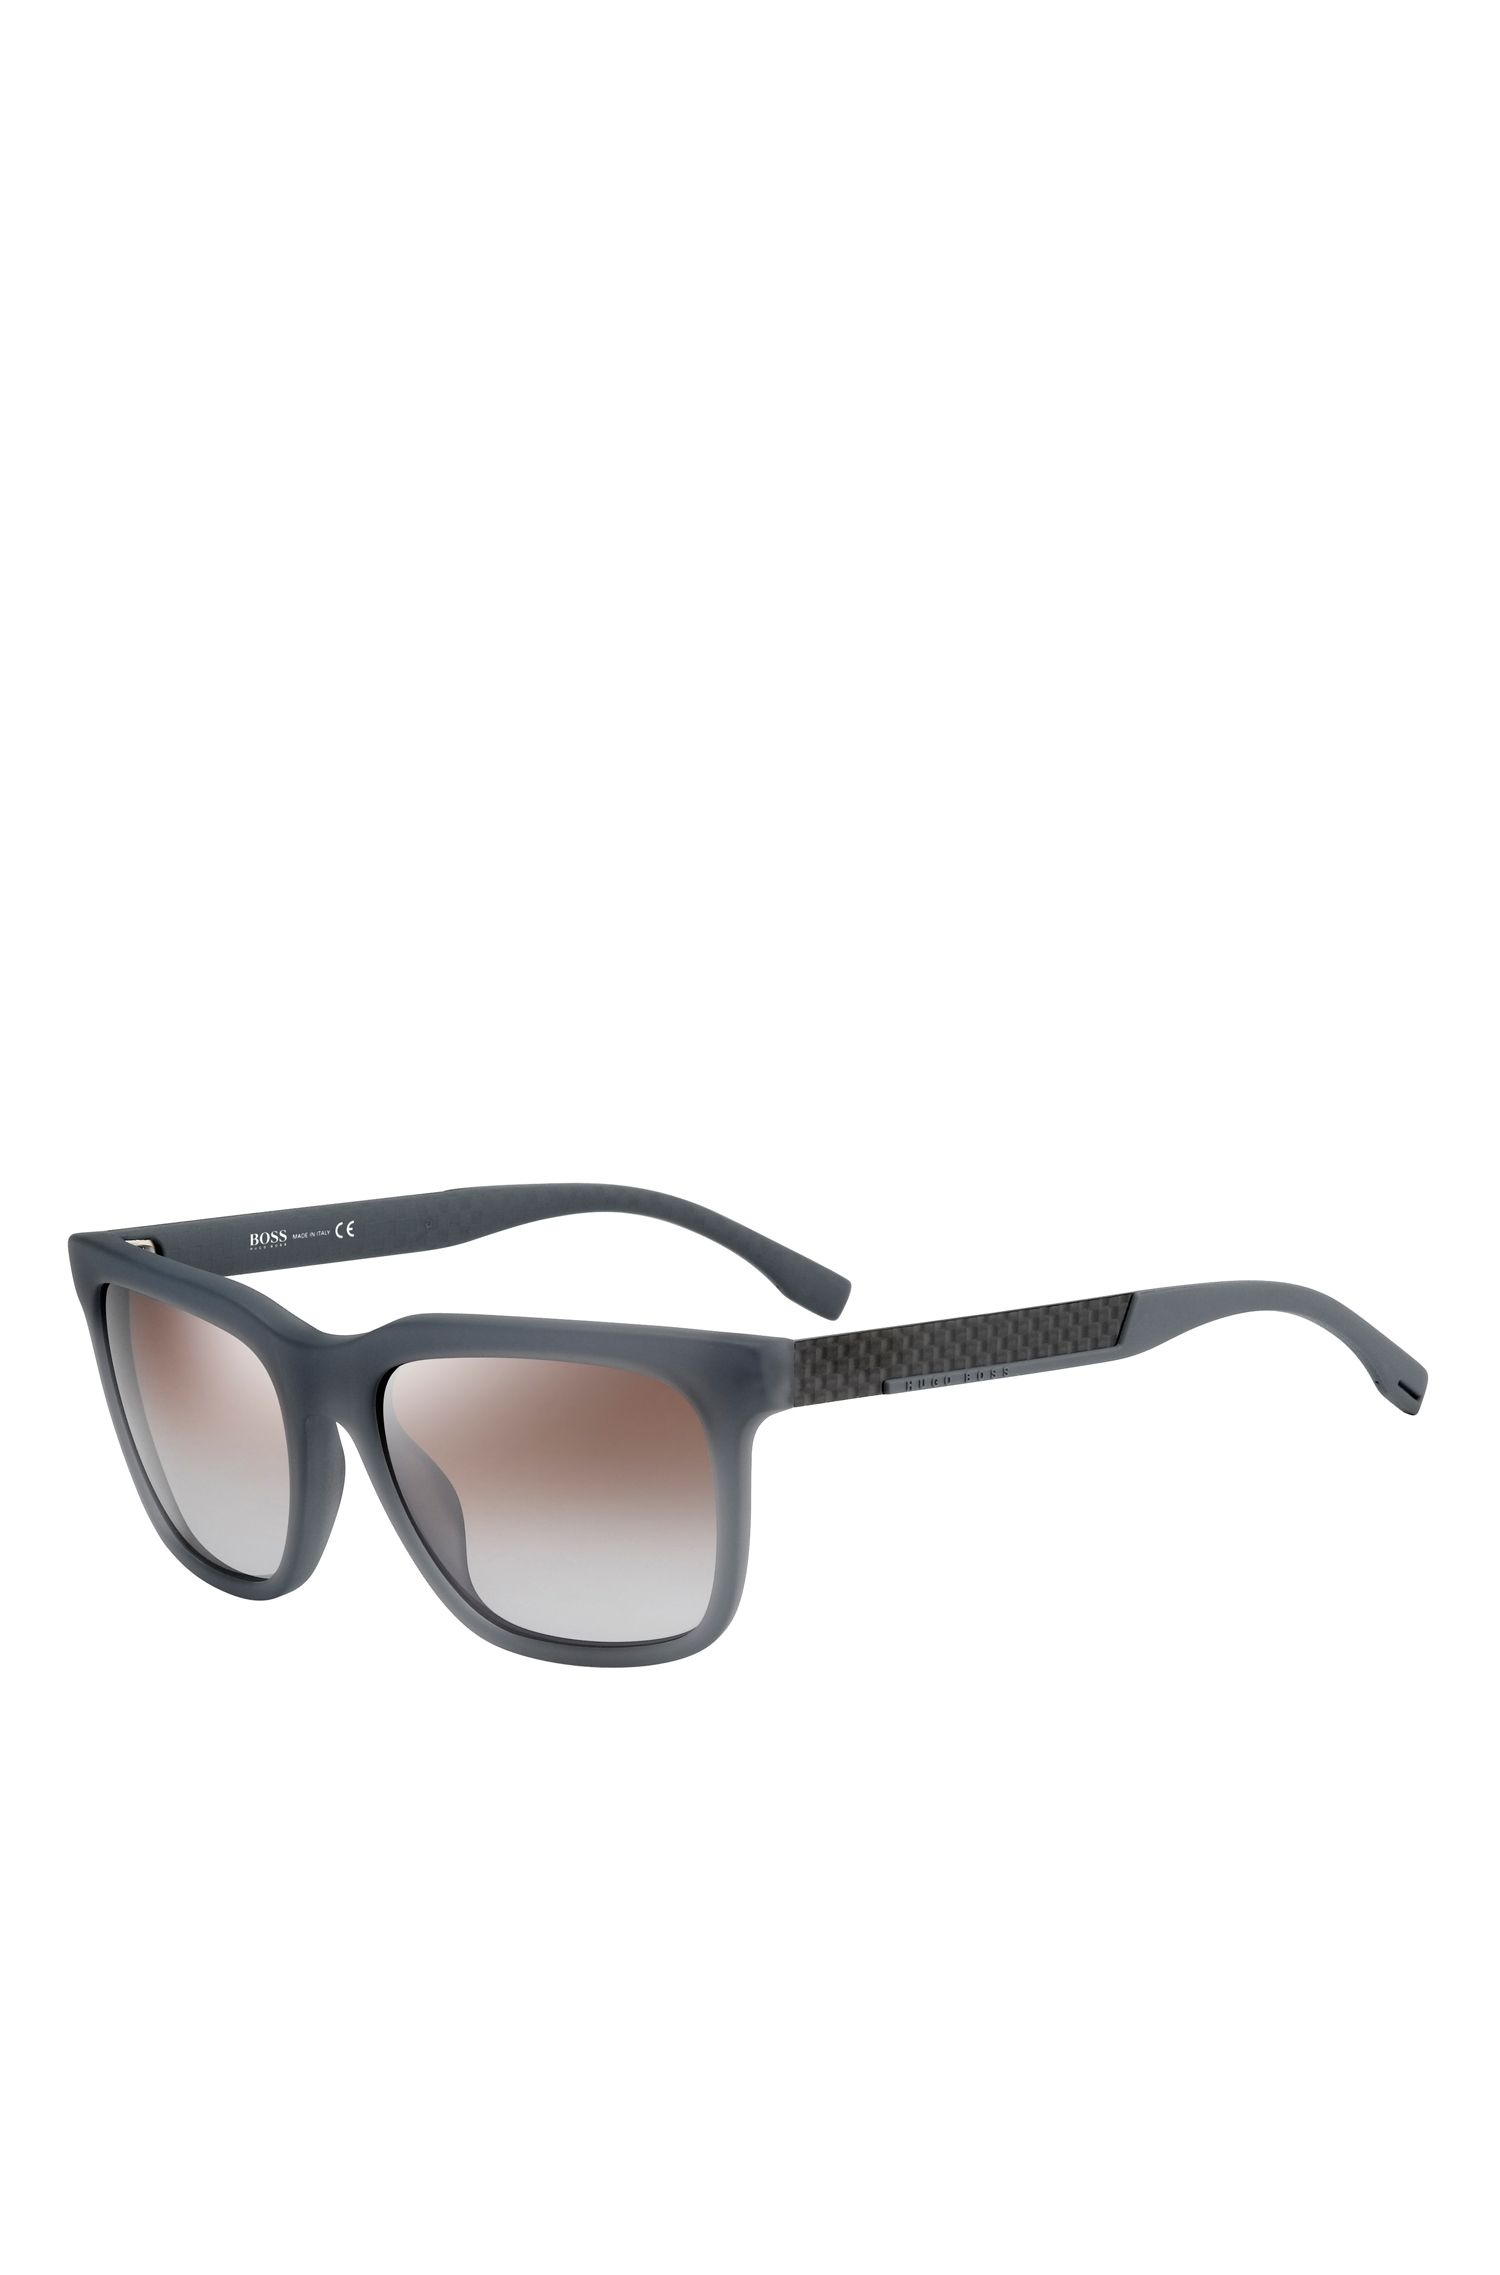 Gradient Lens Rectangular Sunglasses | BOSS 0670S